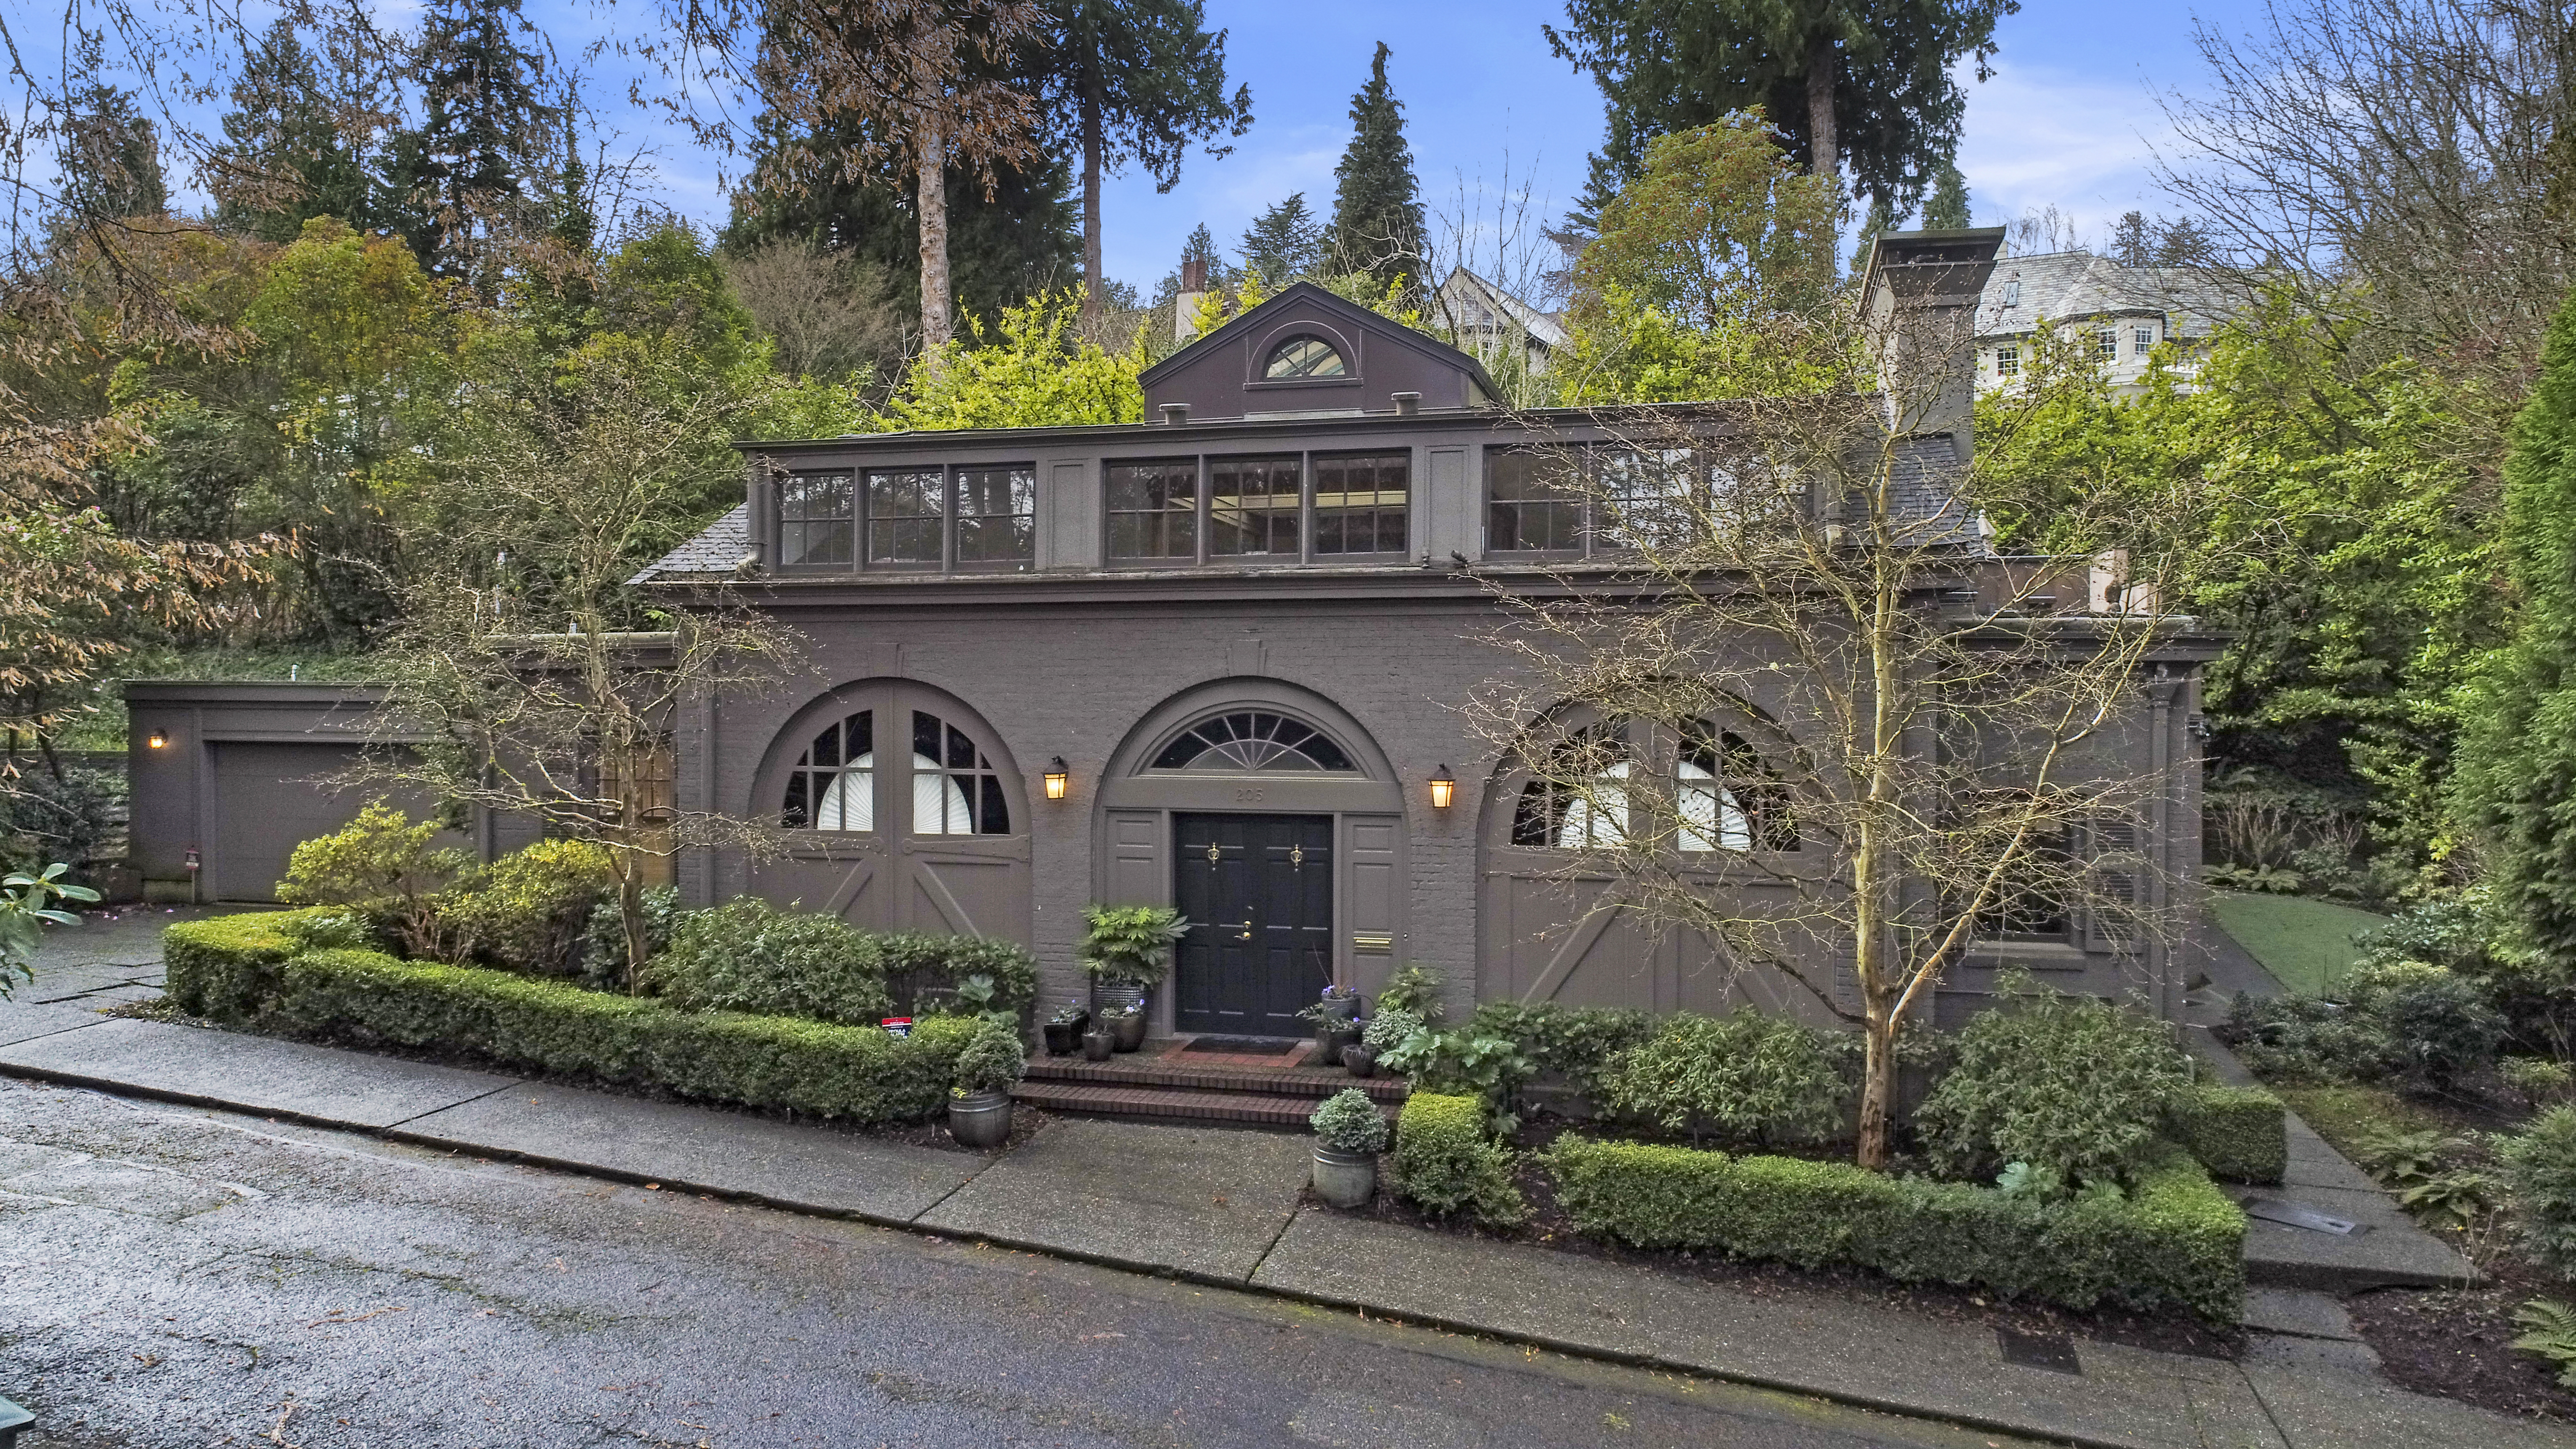 A gray carriage house sits on a sloping street surrounded by green trees.